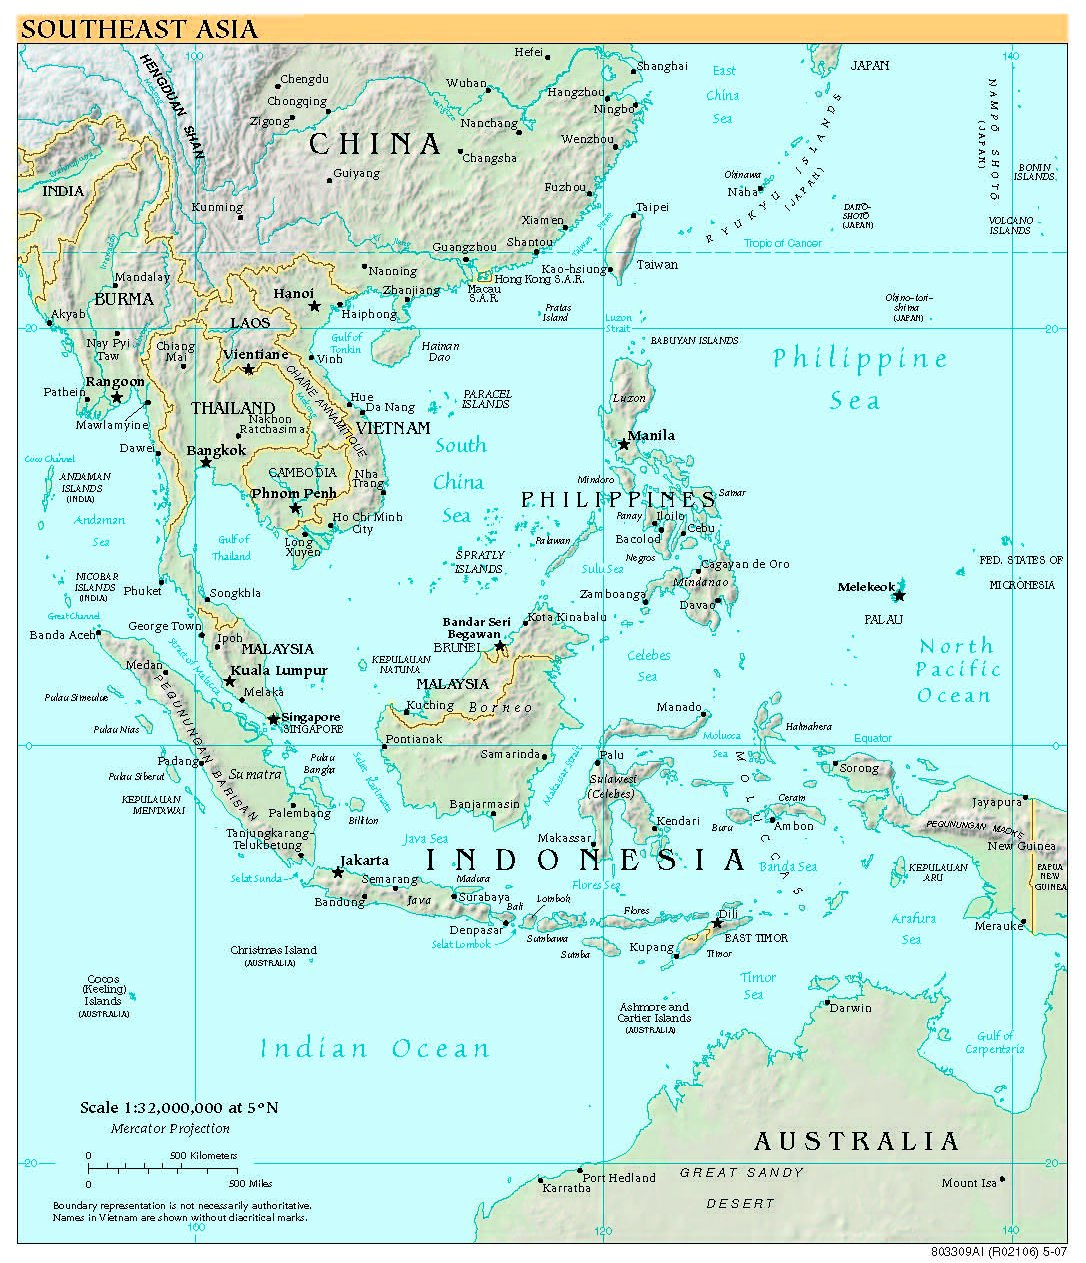 Free High Resolution Map Of Southeast Asia - Asia maps